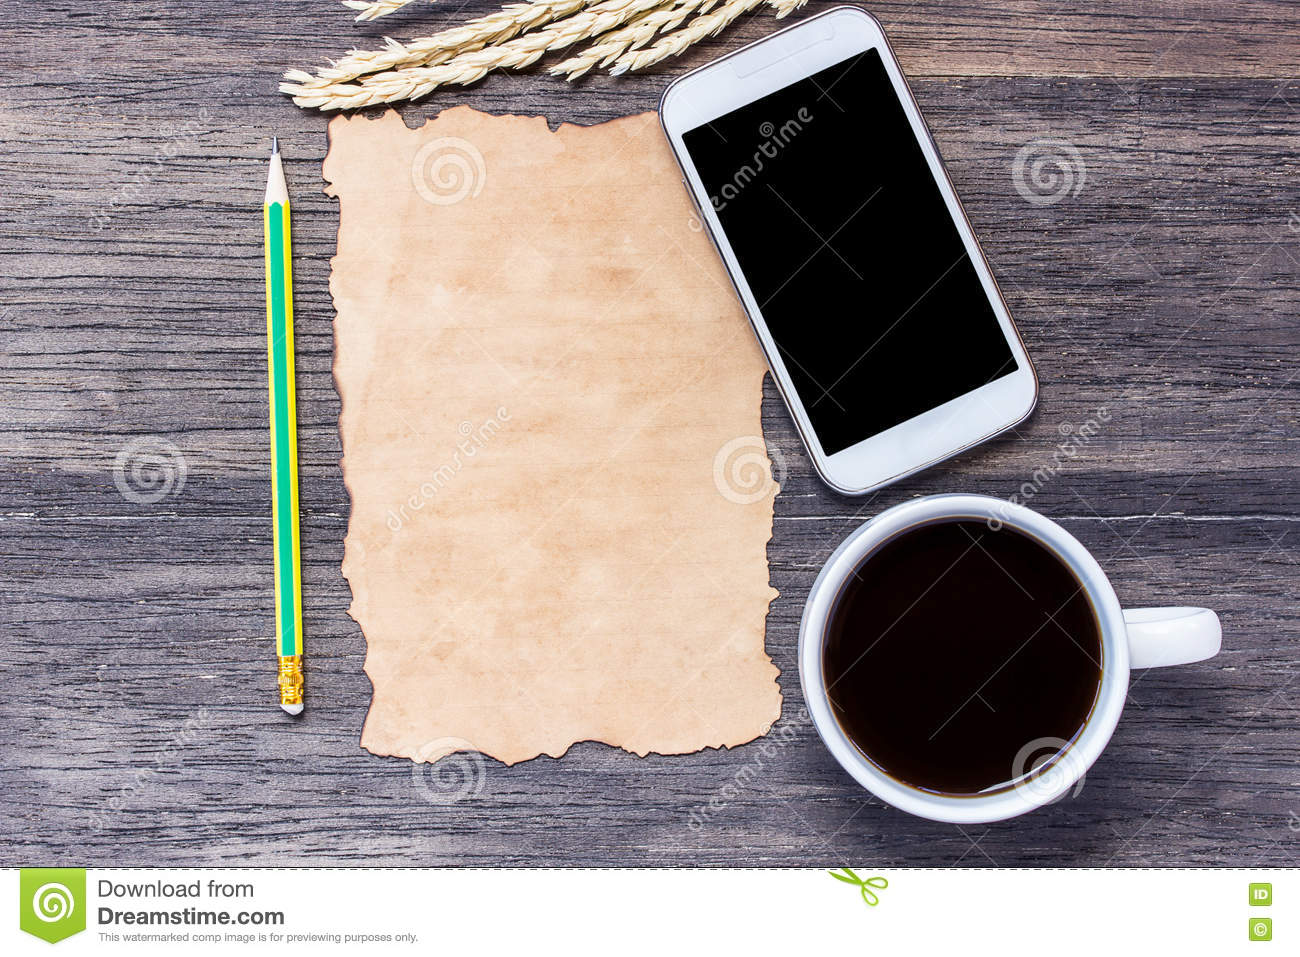 Ears of wheat,smart phone and old paper with cup of coffee